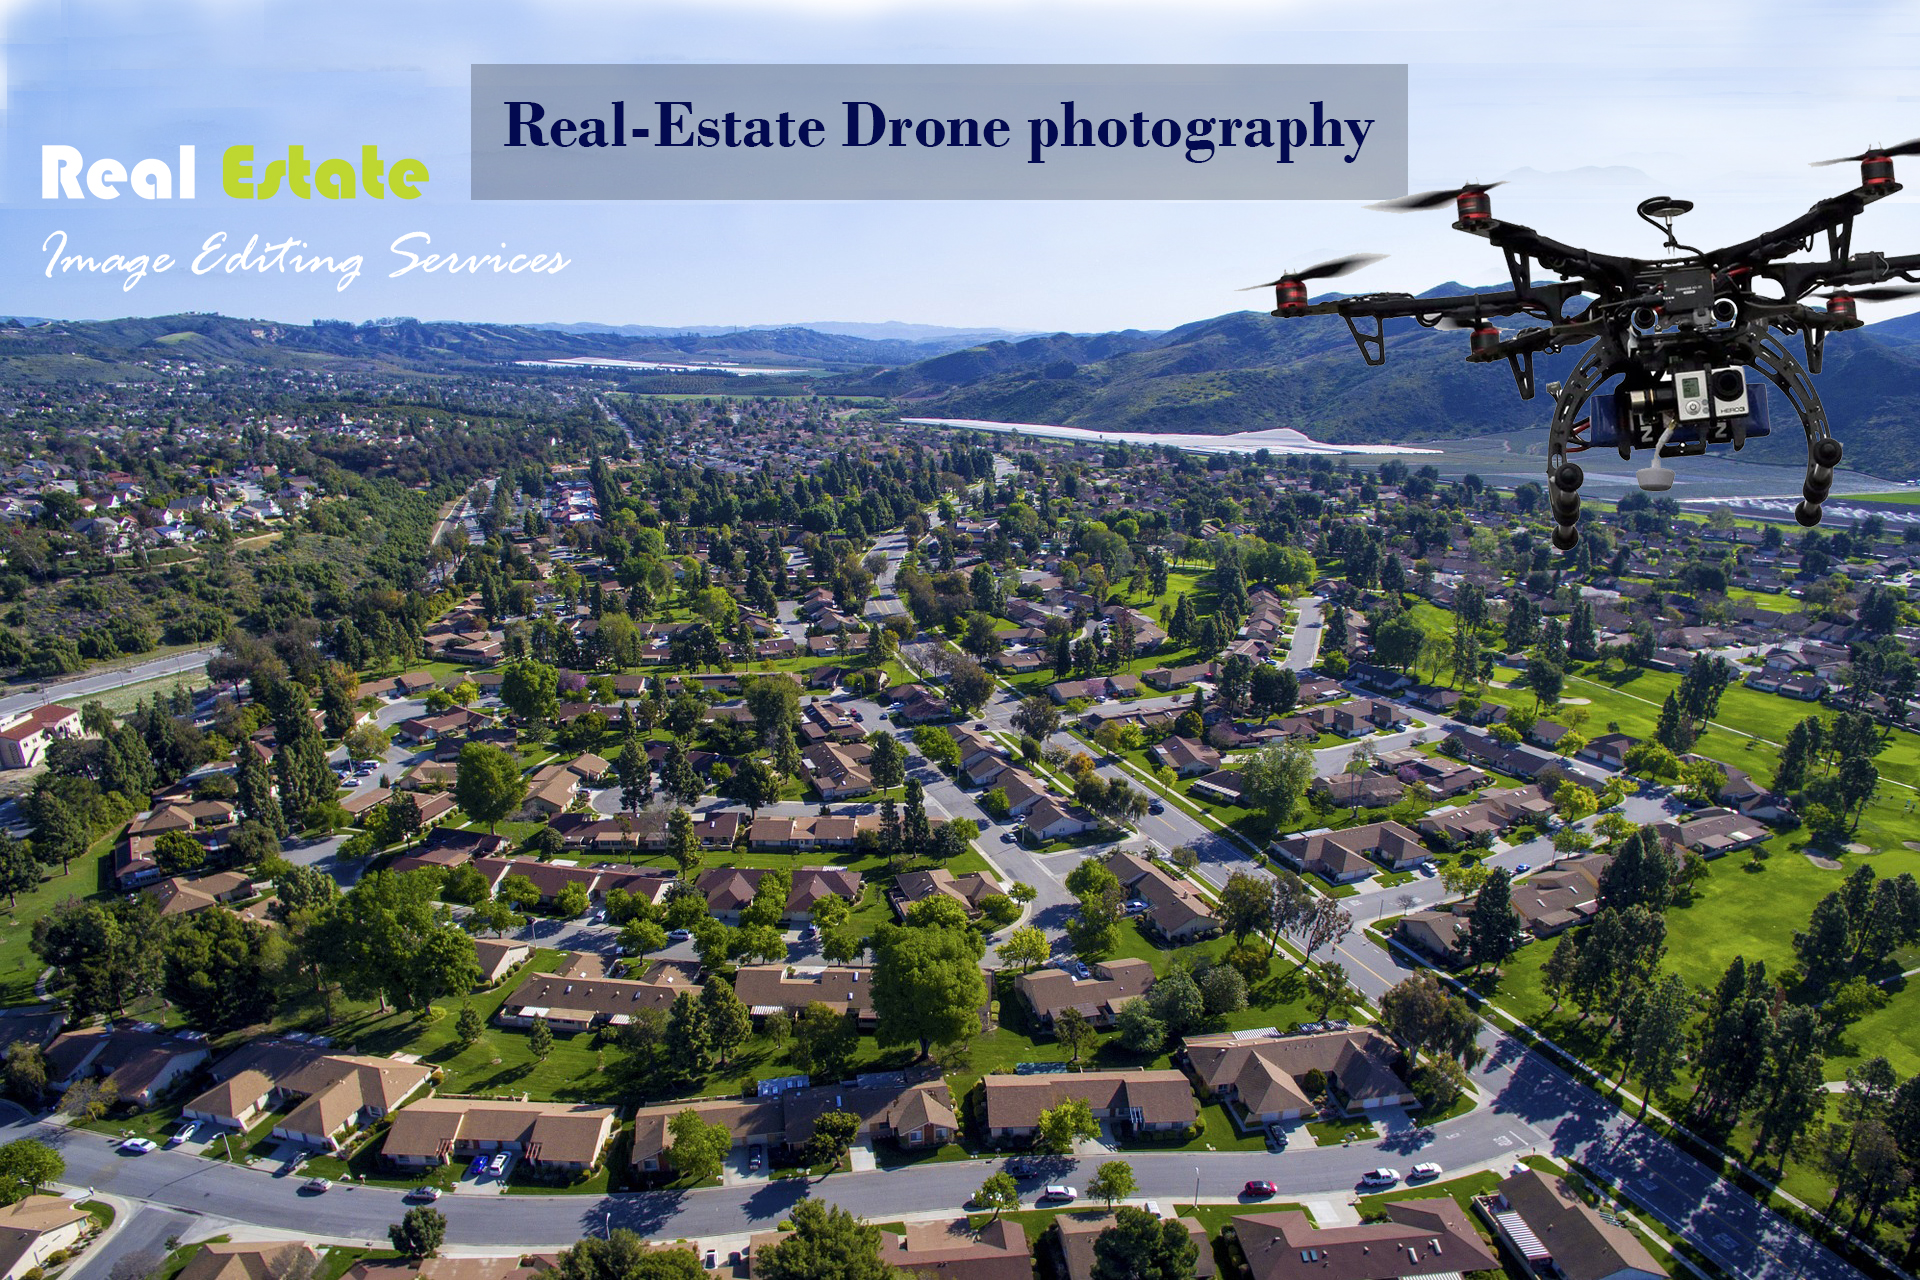 Easy way to shoot Drone Real-estate image photography